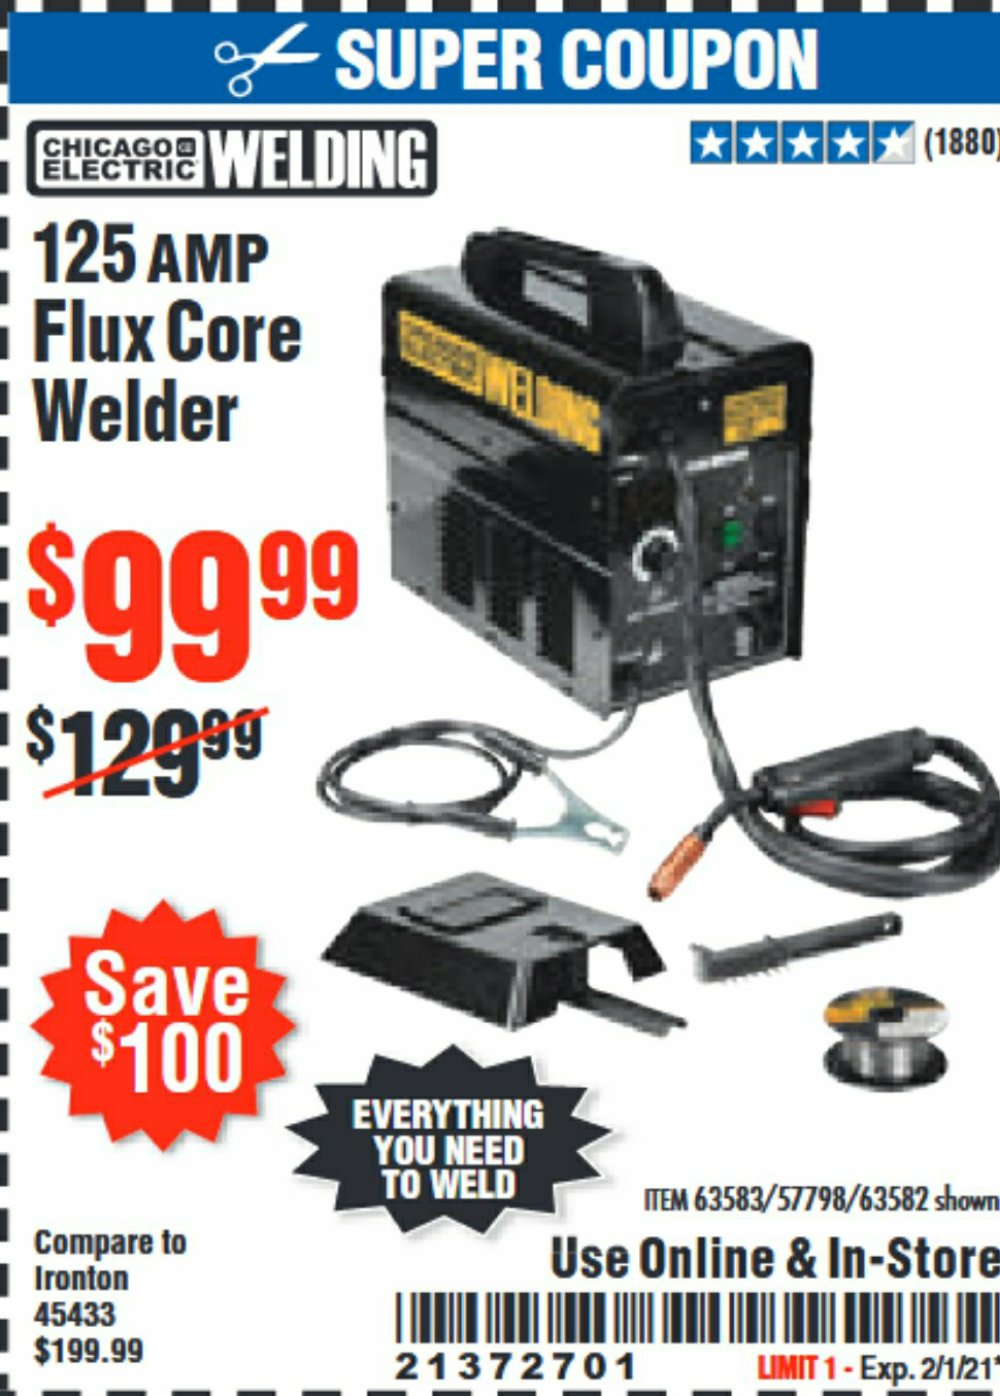 Harbor Freight Coupon, HF Coupons - flux welder